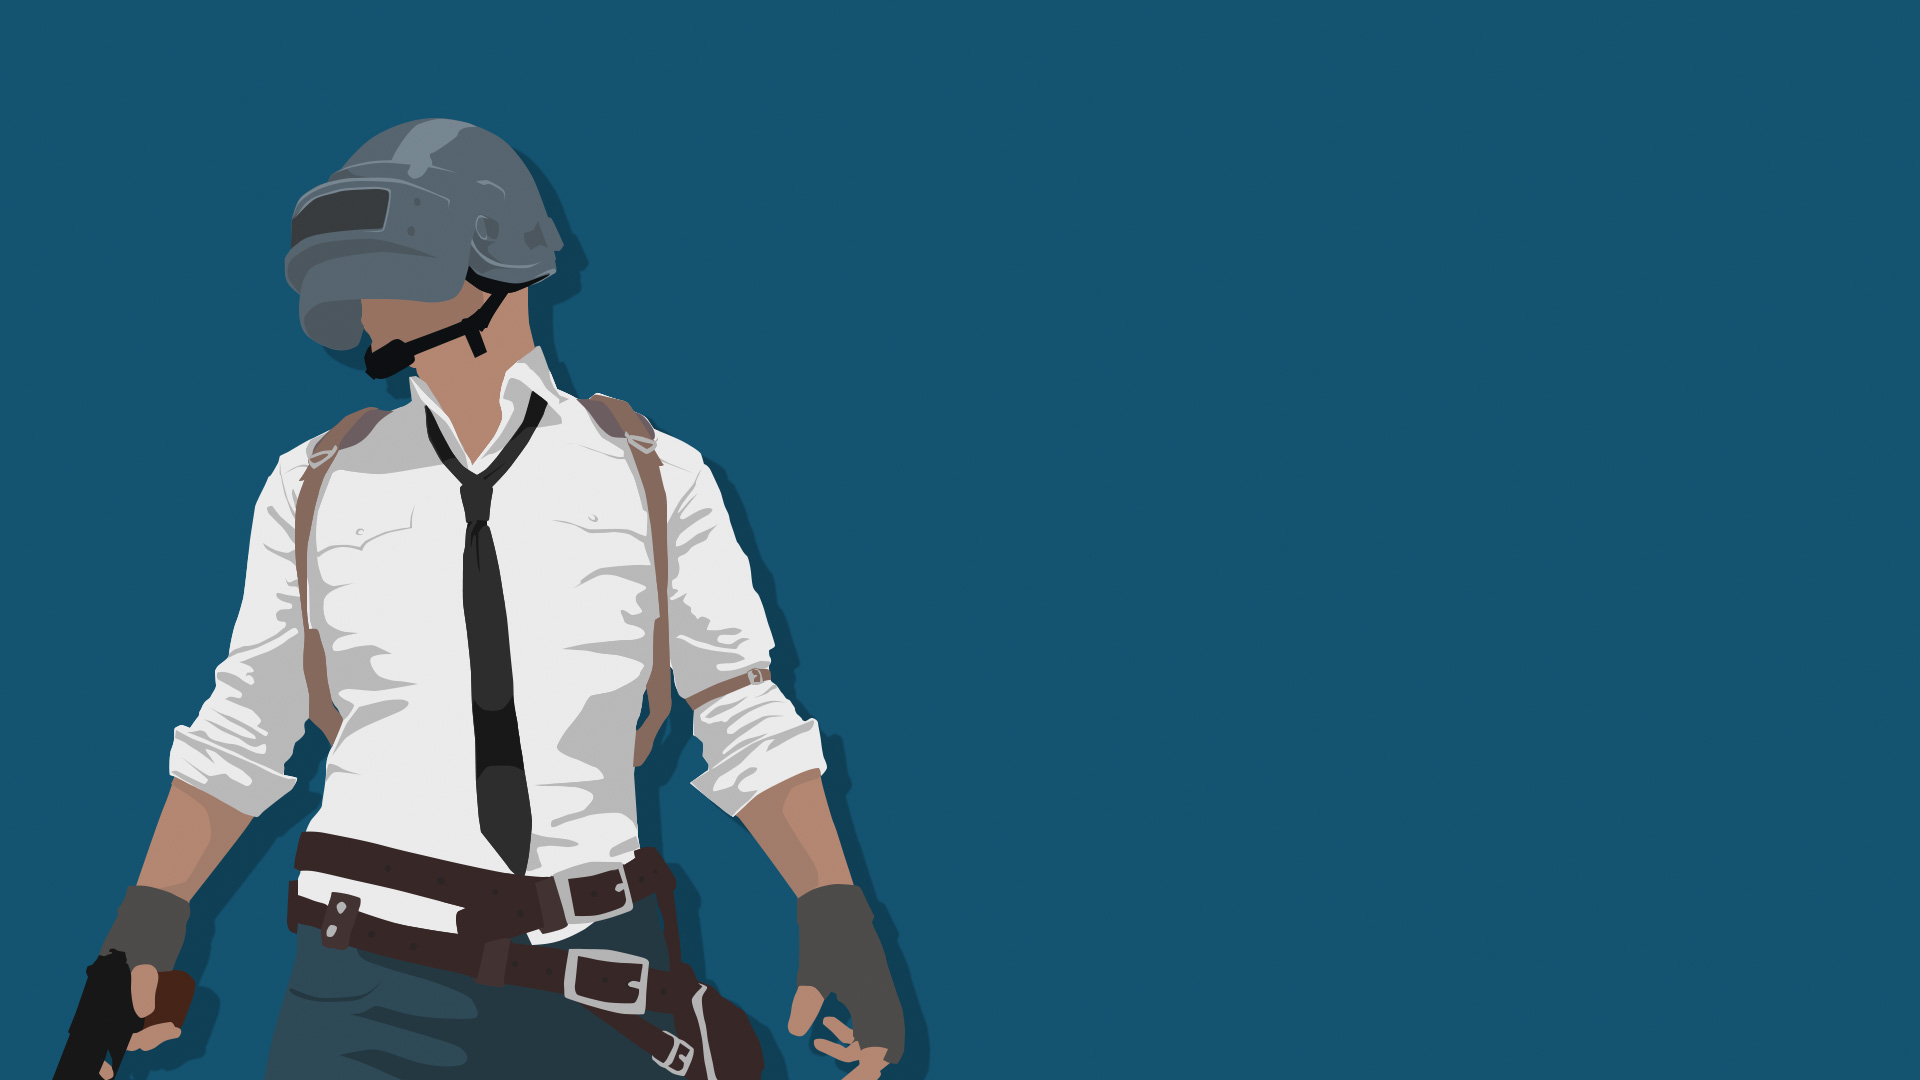 2048x1152 Pubg Game Girl Fanart 2048x1152 Resolution Hd 4k: Playerunknowns Battlegrounds Minimalism, HD Games, 4k